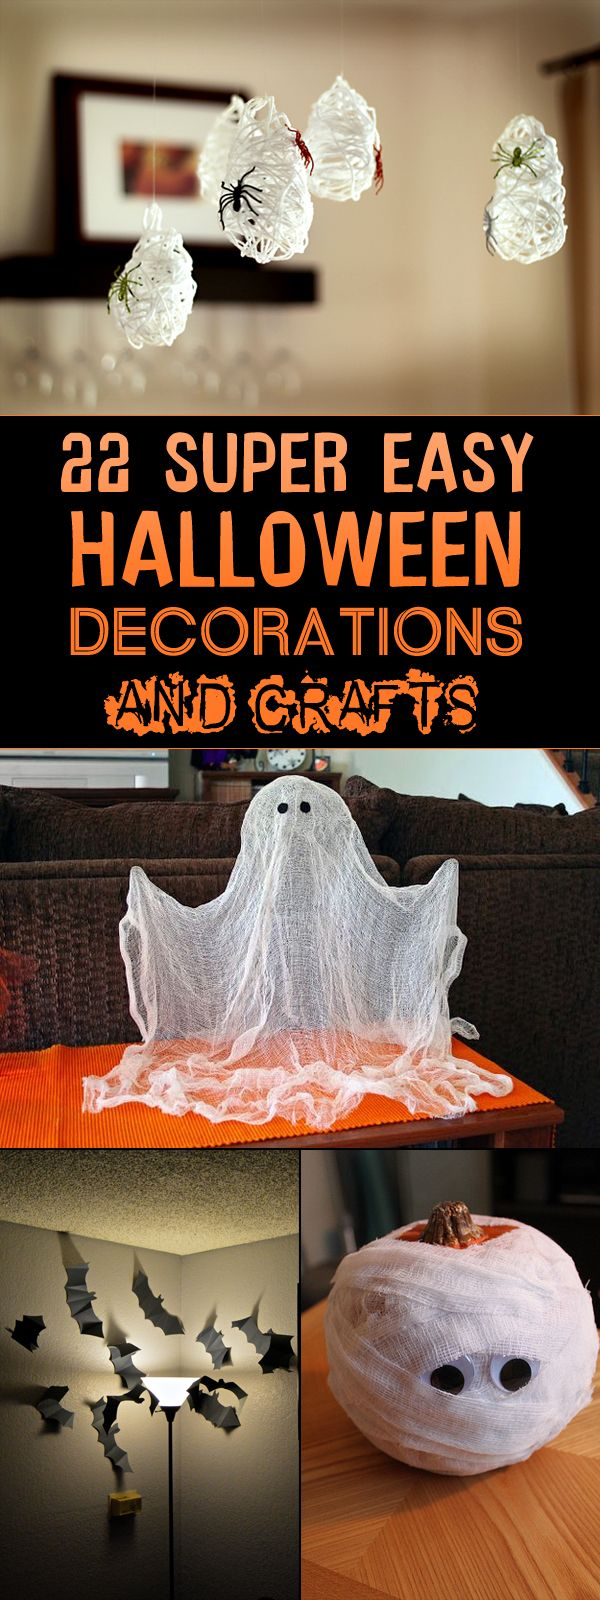 22 super easy halloween decorations and crafts you can make yourself - Cheap Easy Halloween Decorations